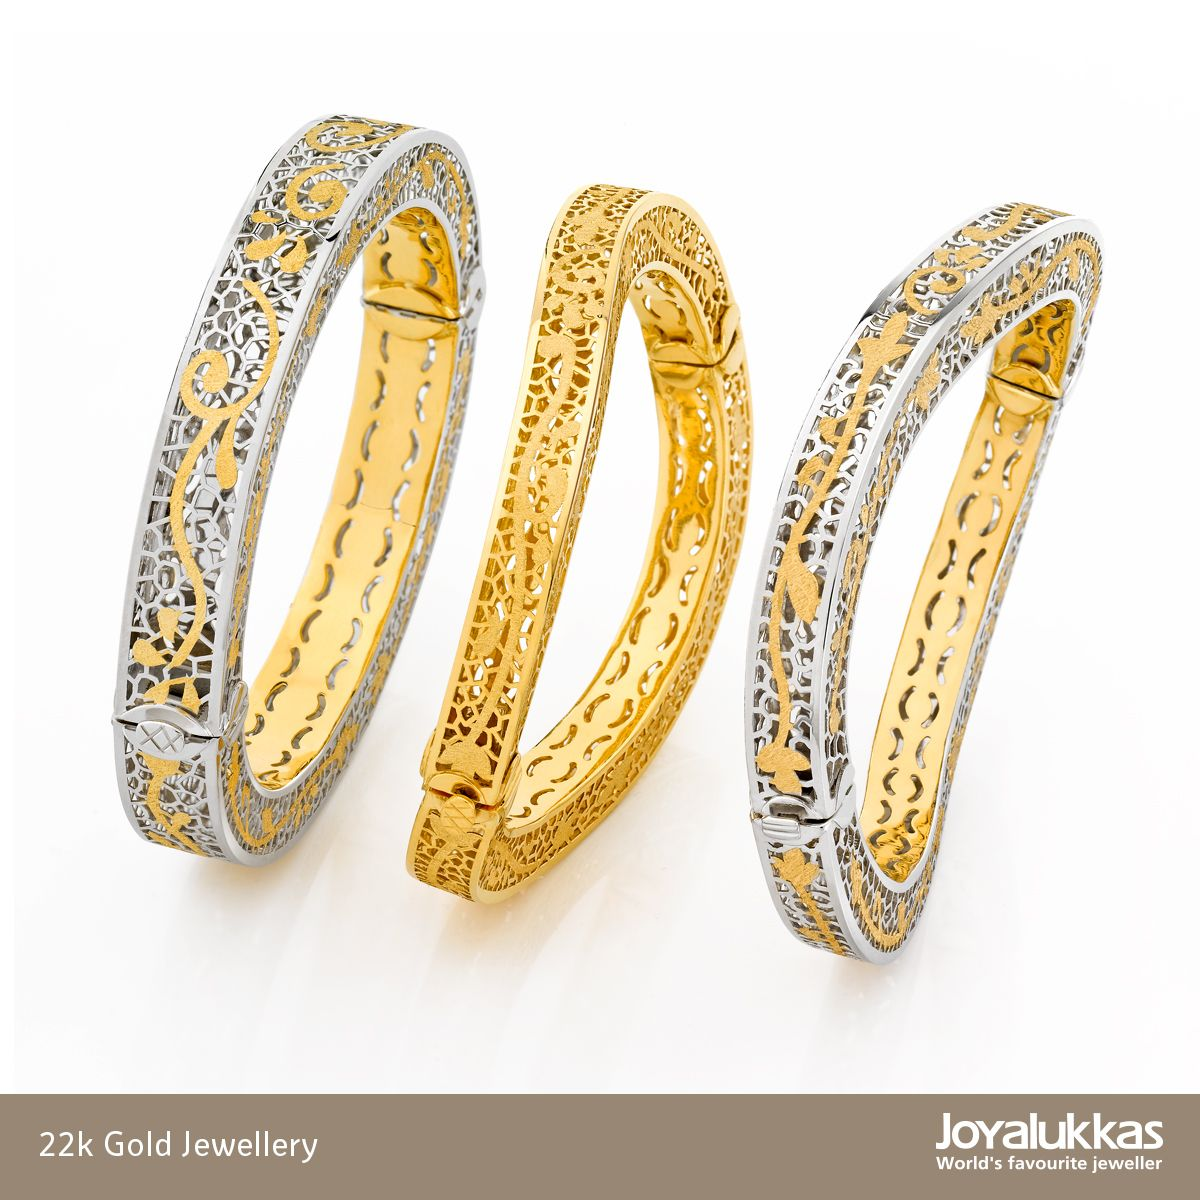 Gold Italy Platinum: 22k Gold Open Type Artform Bangles. Made In Italy